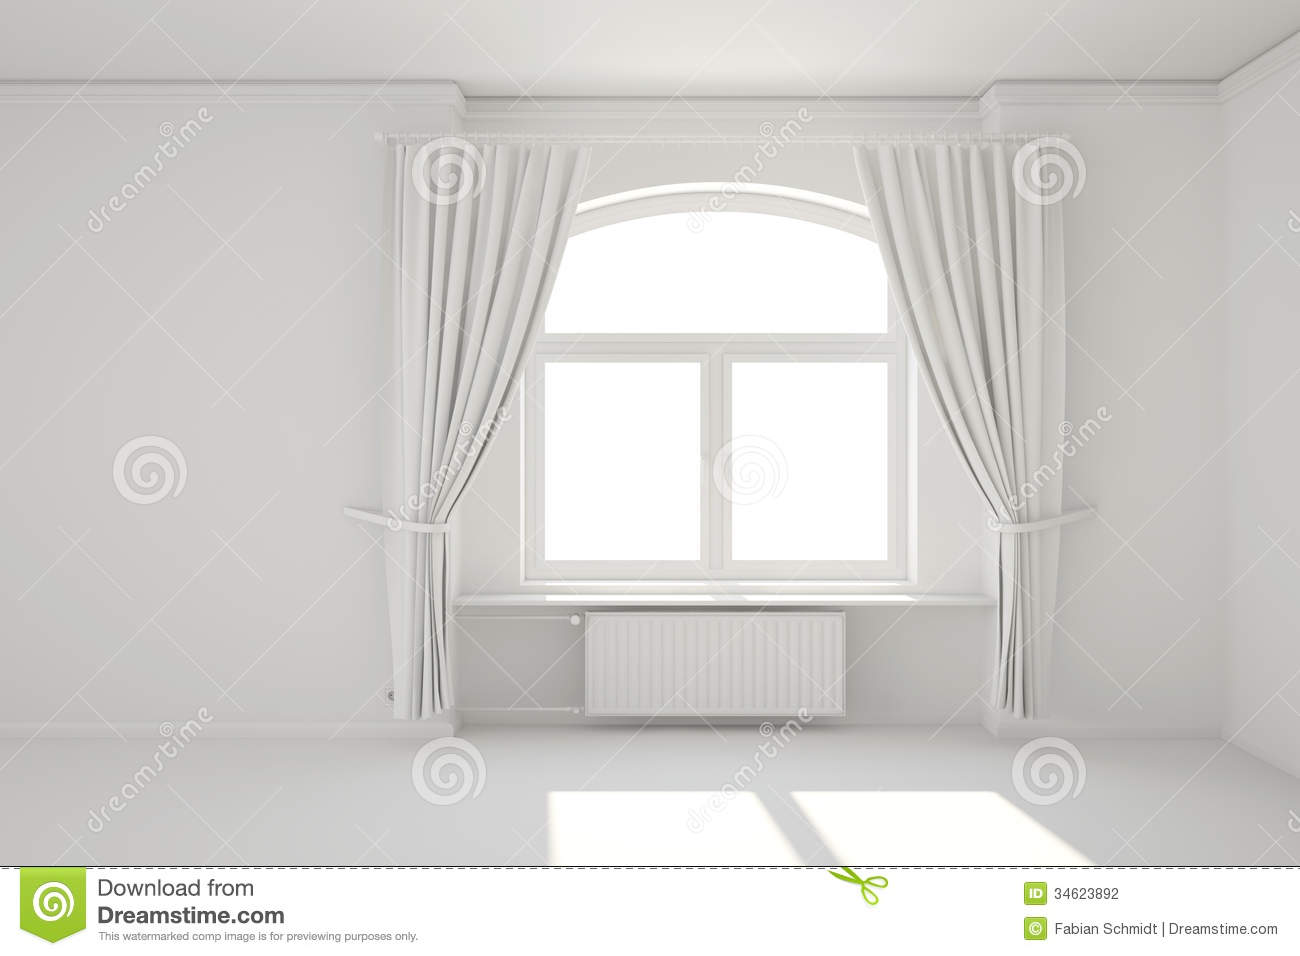 empty white room with window stock illustration image 34623892. Black Bedroom Furniture Sets. Home Design Ideas